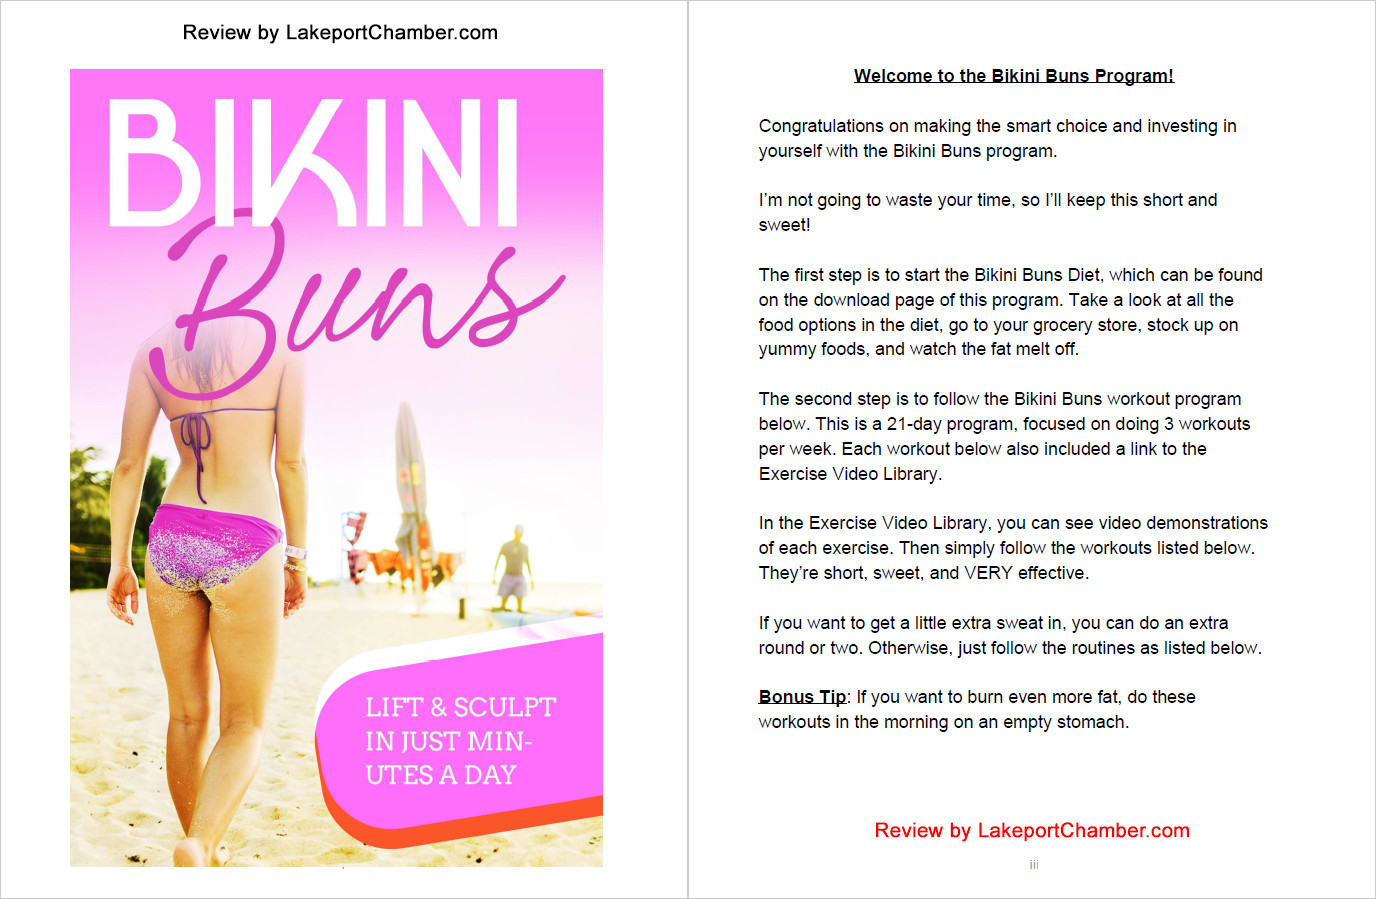 The Bikini Buns Program - Table of Contents